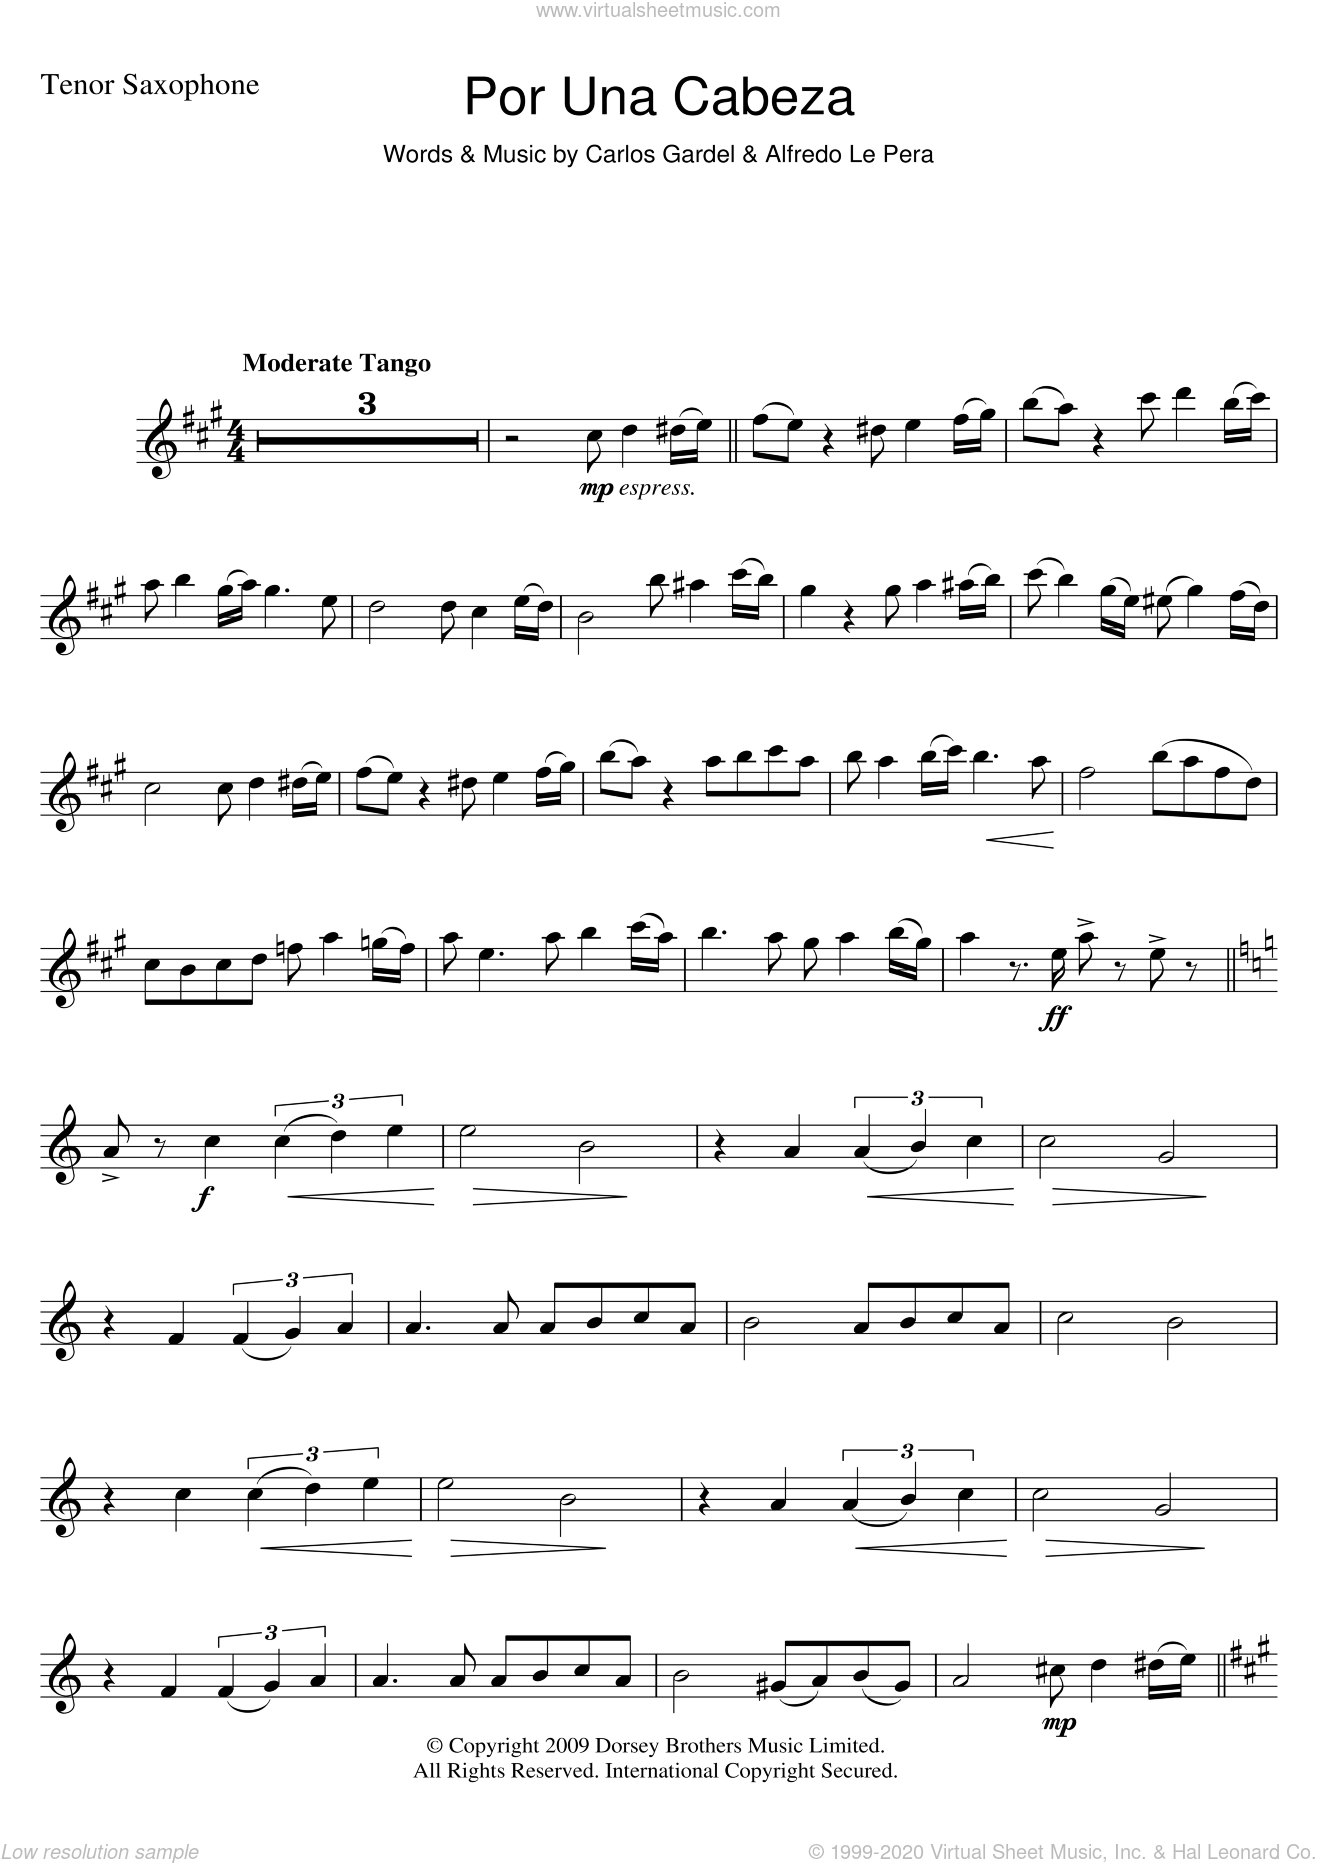 Por Una Cabeza sheet music for tenor saxophone solo by Carlos Gardel and Alfredo Le Pera, intermediate. Score Image Preview.